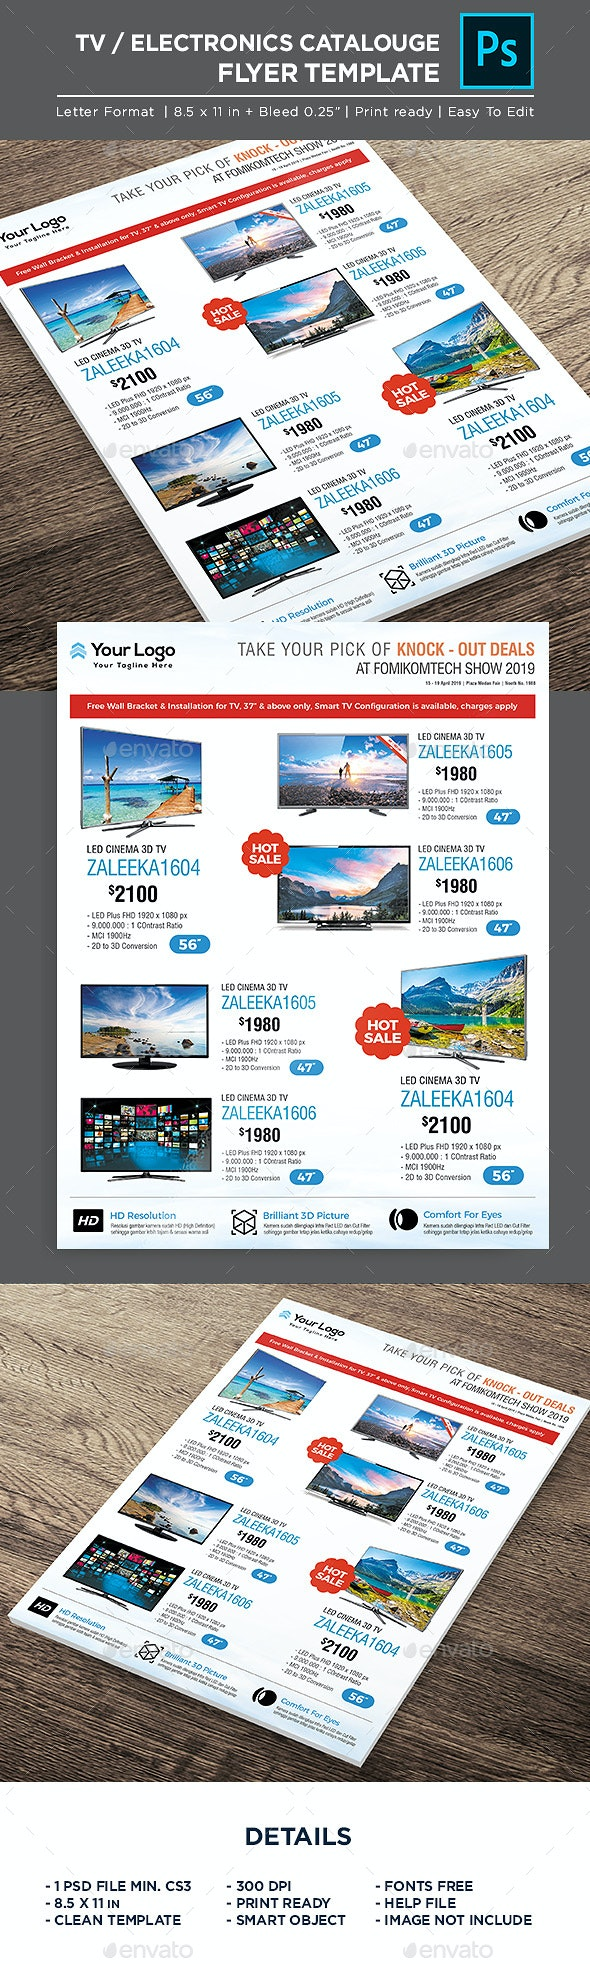 Product Flyer - TV Sale Promotion - Corporate Flyers